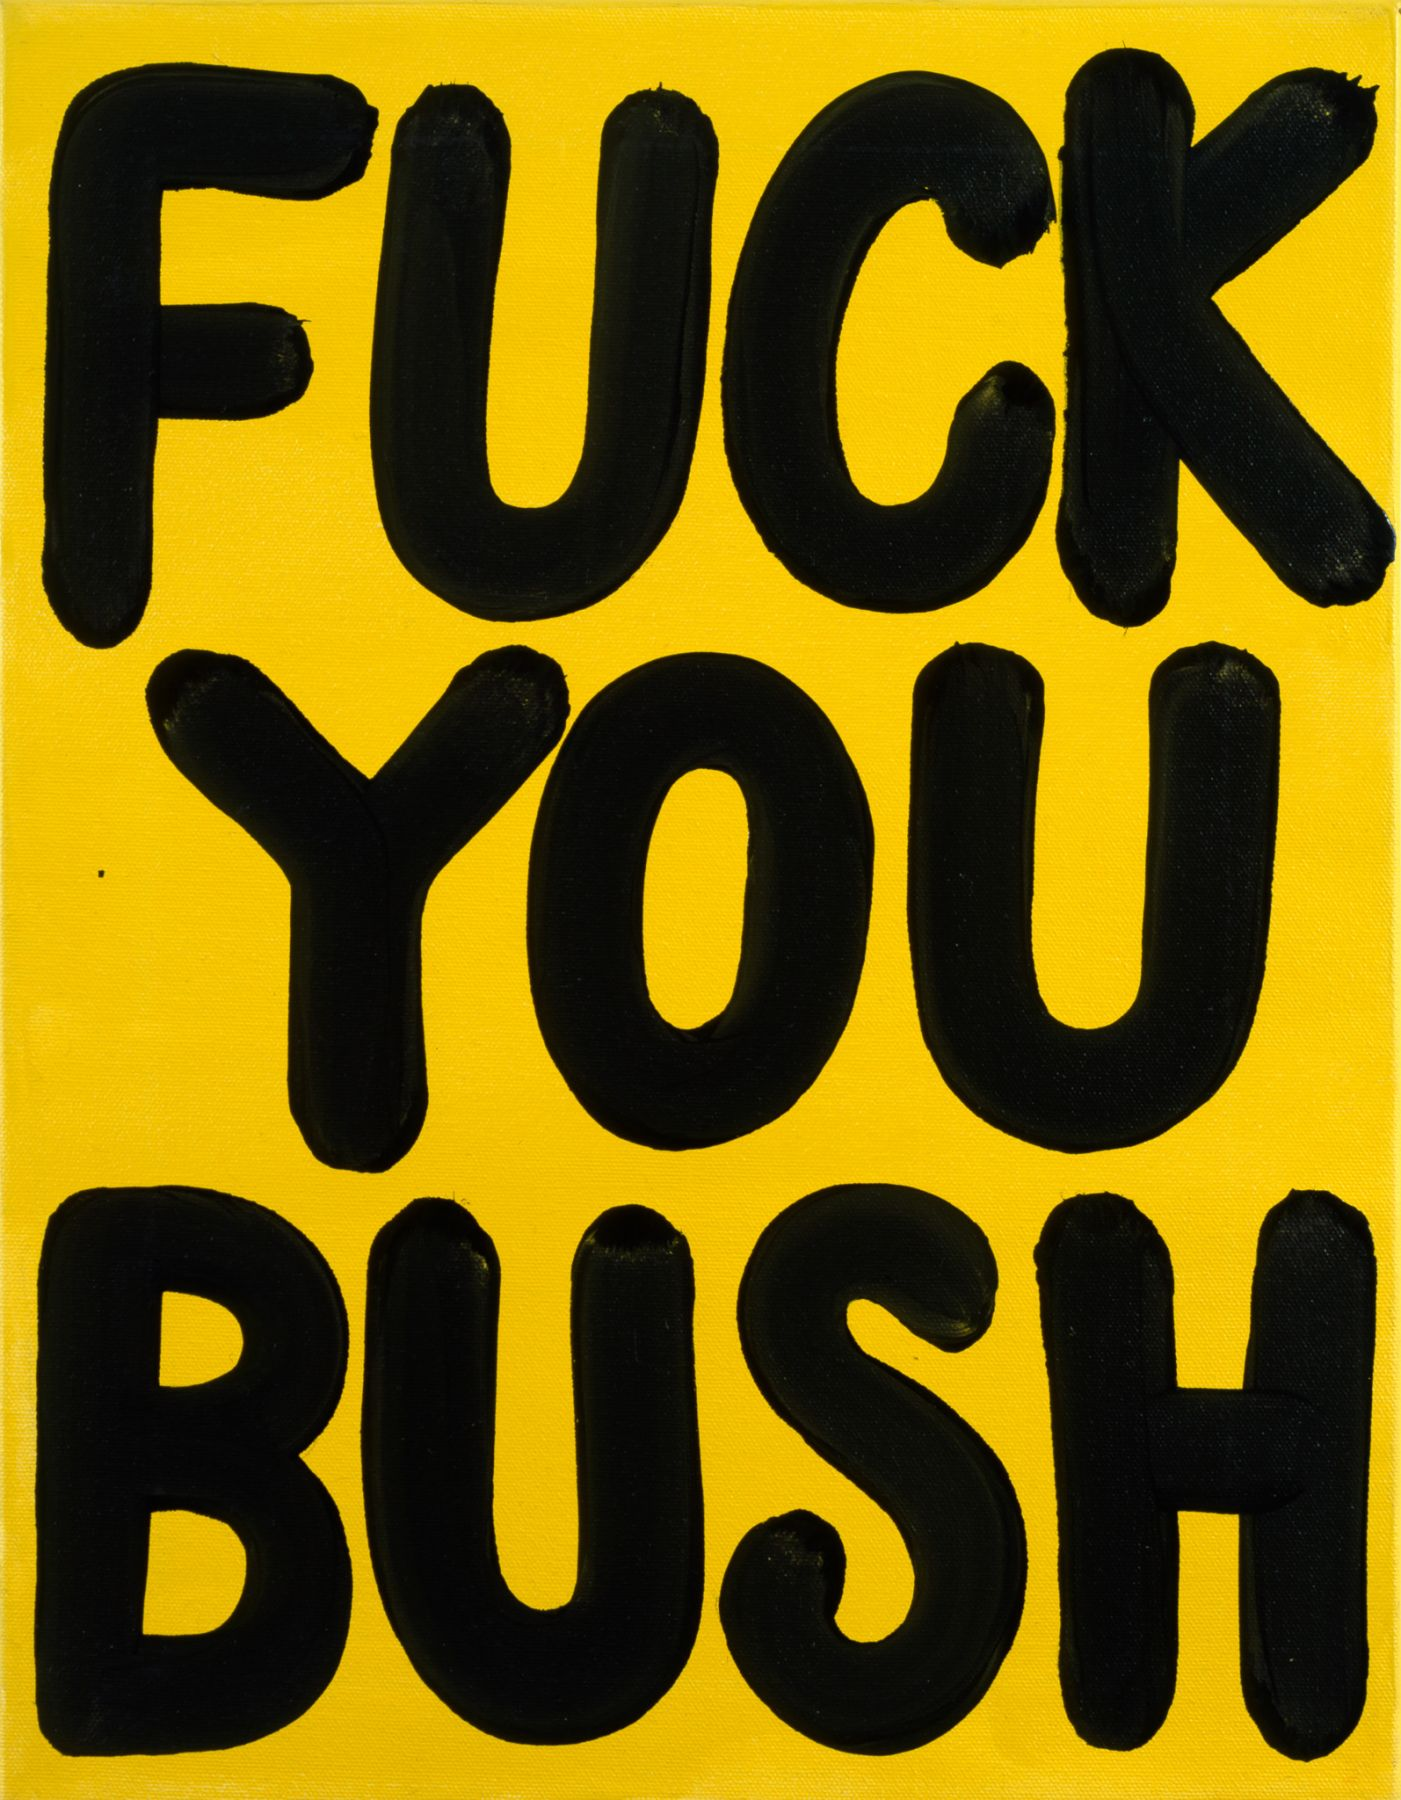 Sue Williams, Fuck You Bush, 2002